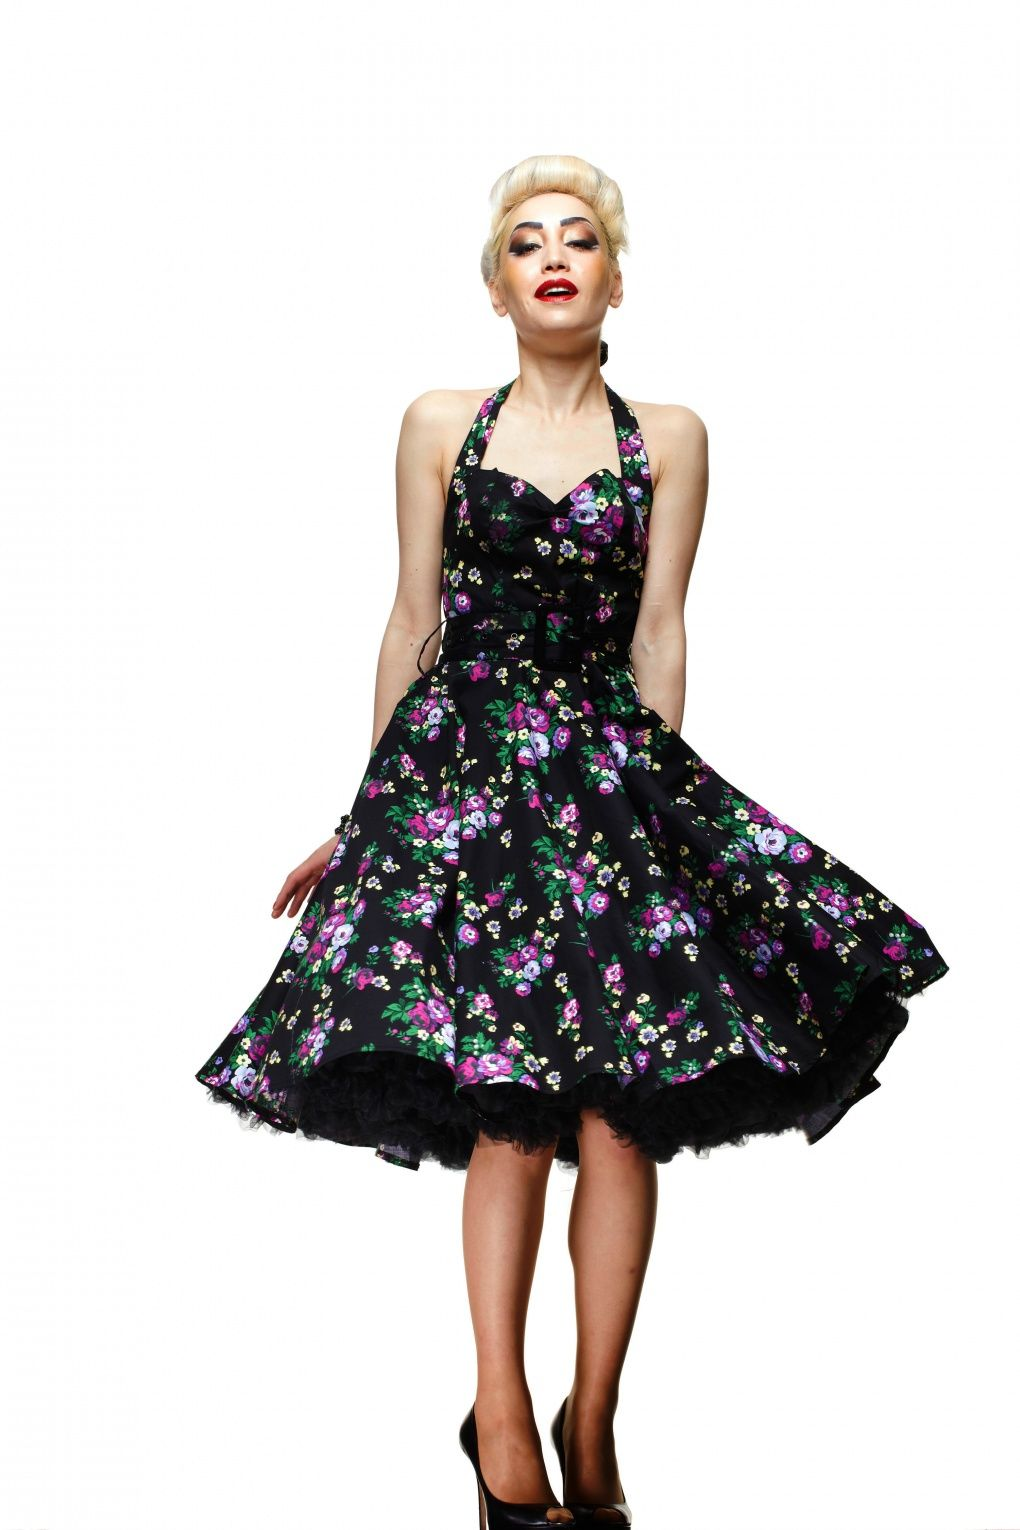 patterns free vintage dresses | dresses bunny 50s retro halter may ...